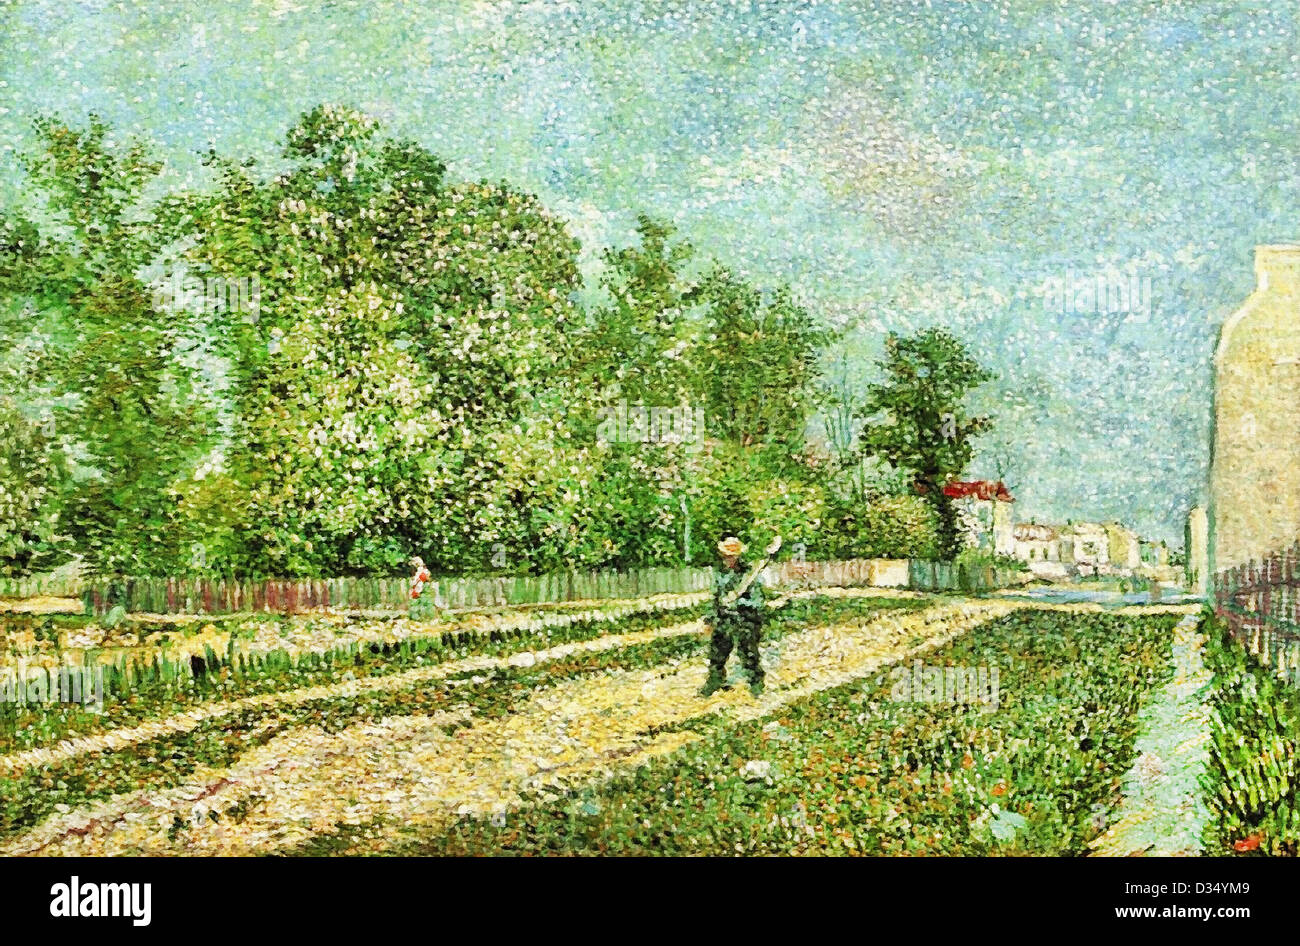 Vincent van Gogh, Man with Spade in a Suburb of Paris. 1887. Post-Impressionism. Oil on canvas. Place of Creation: - Stock Image